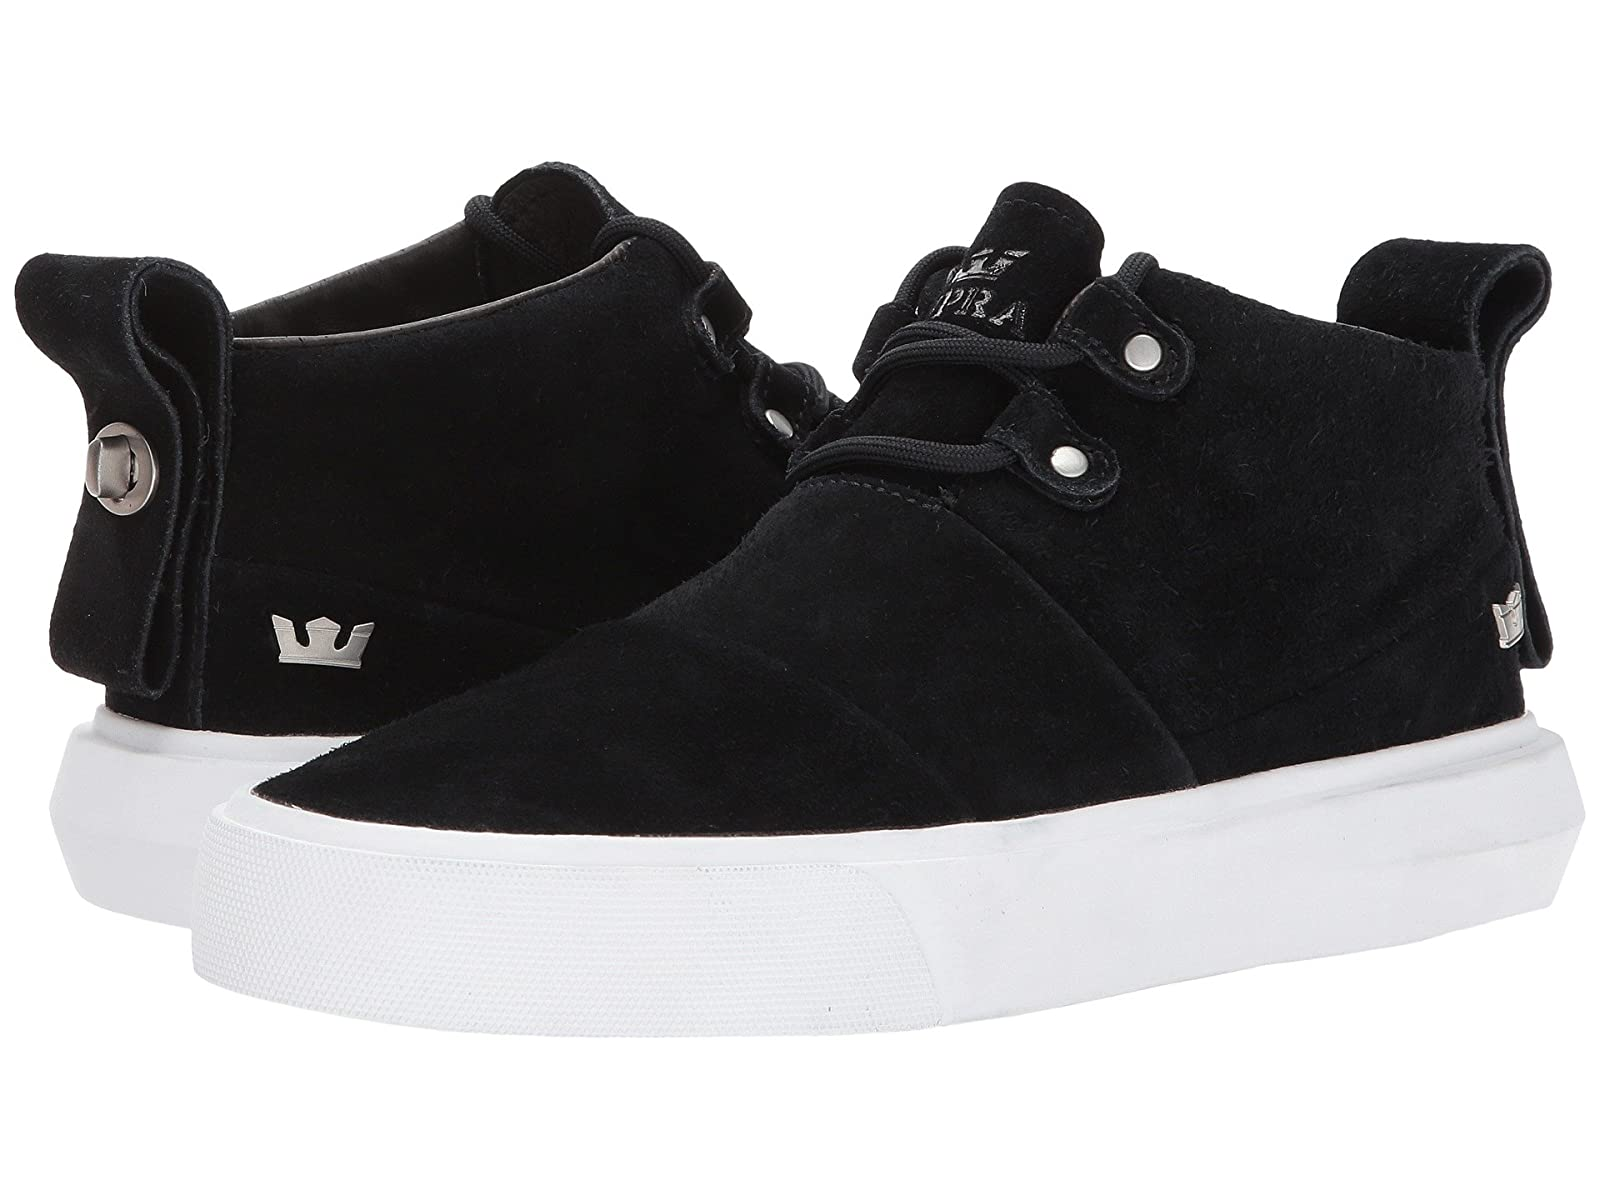 Supra CharlesCheap and distinctive eye-catching shoes